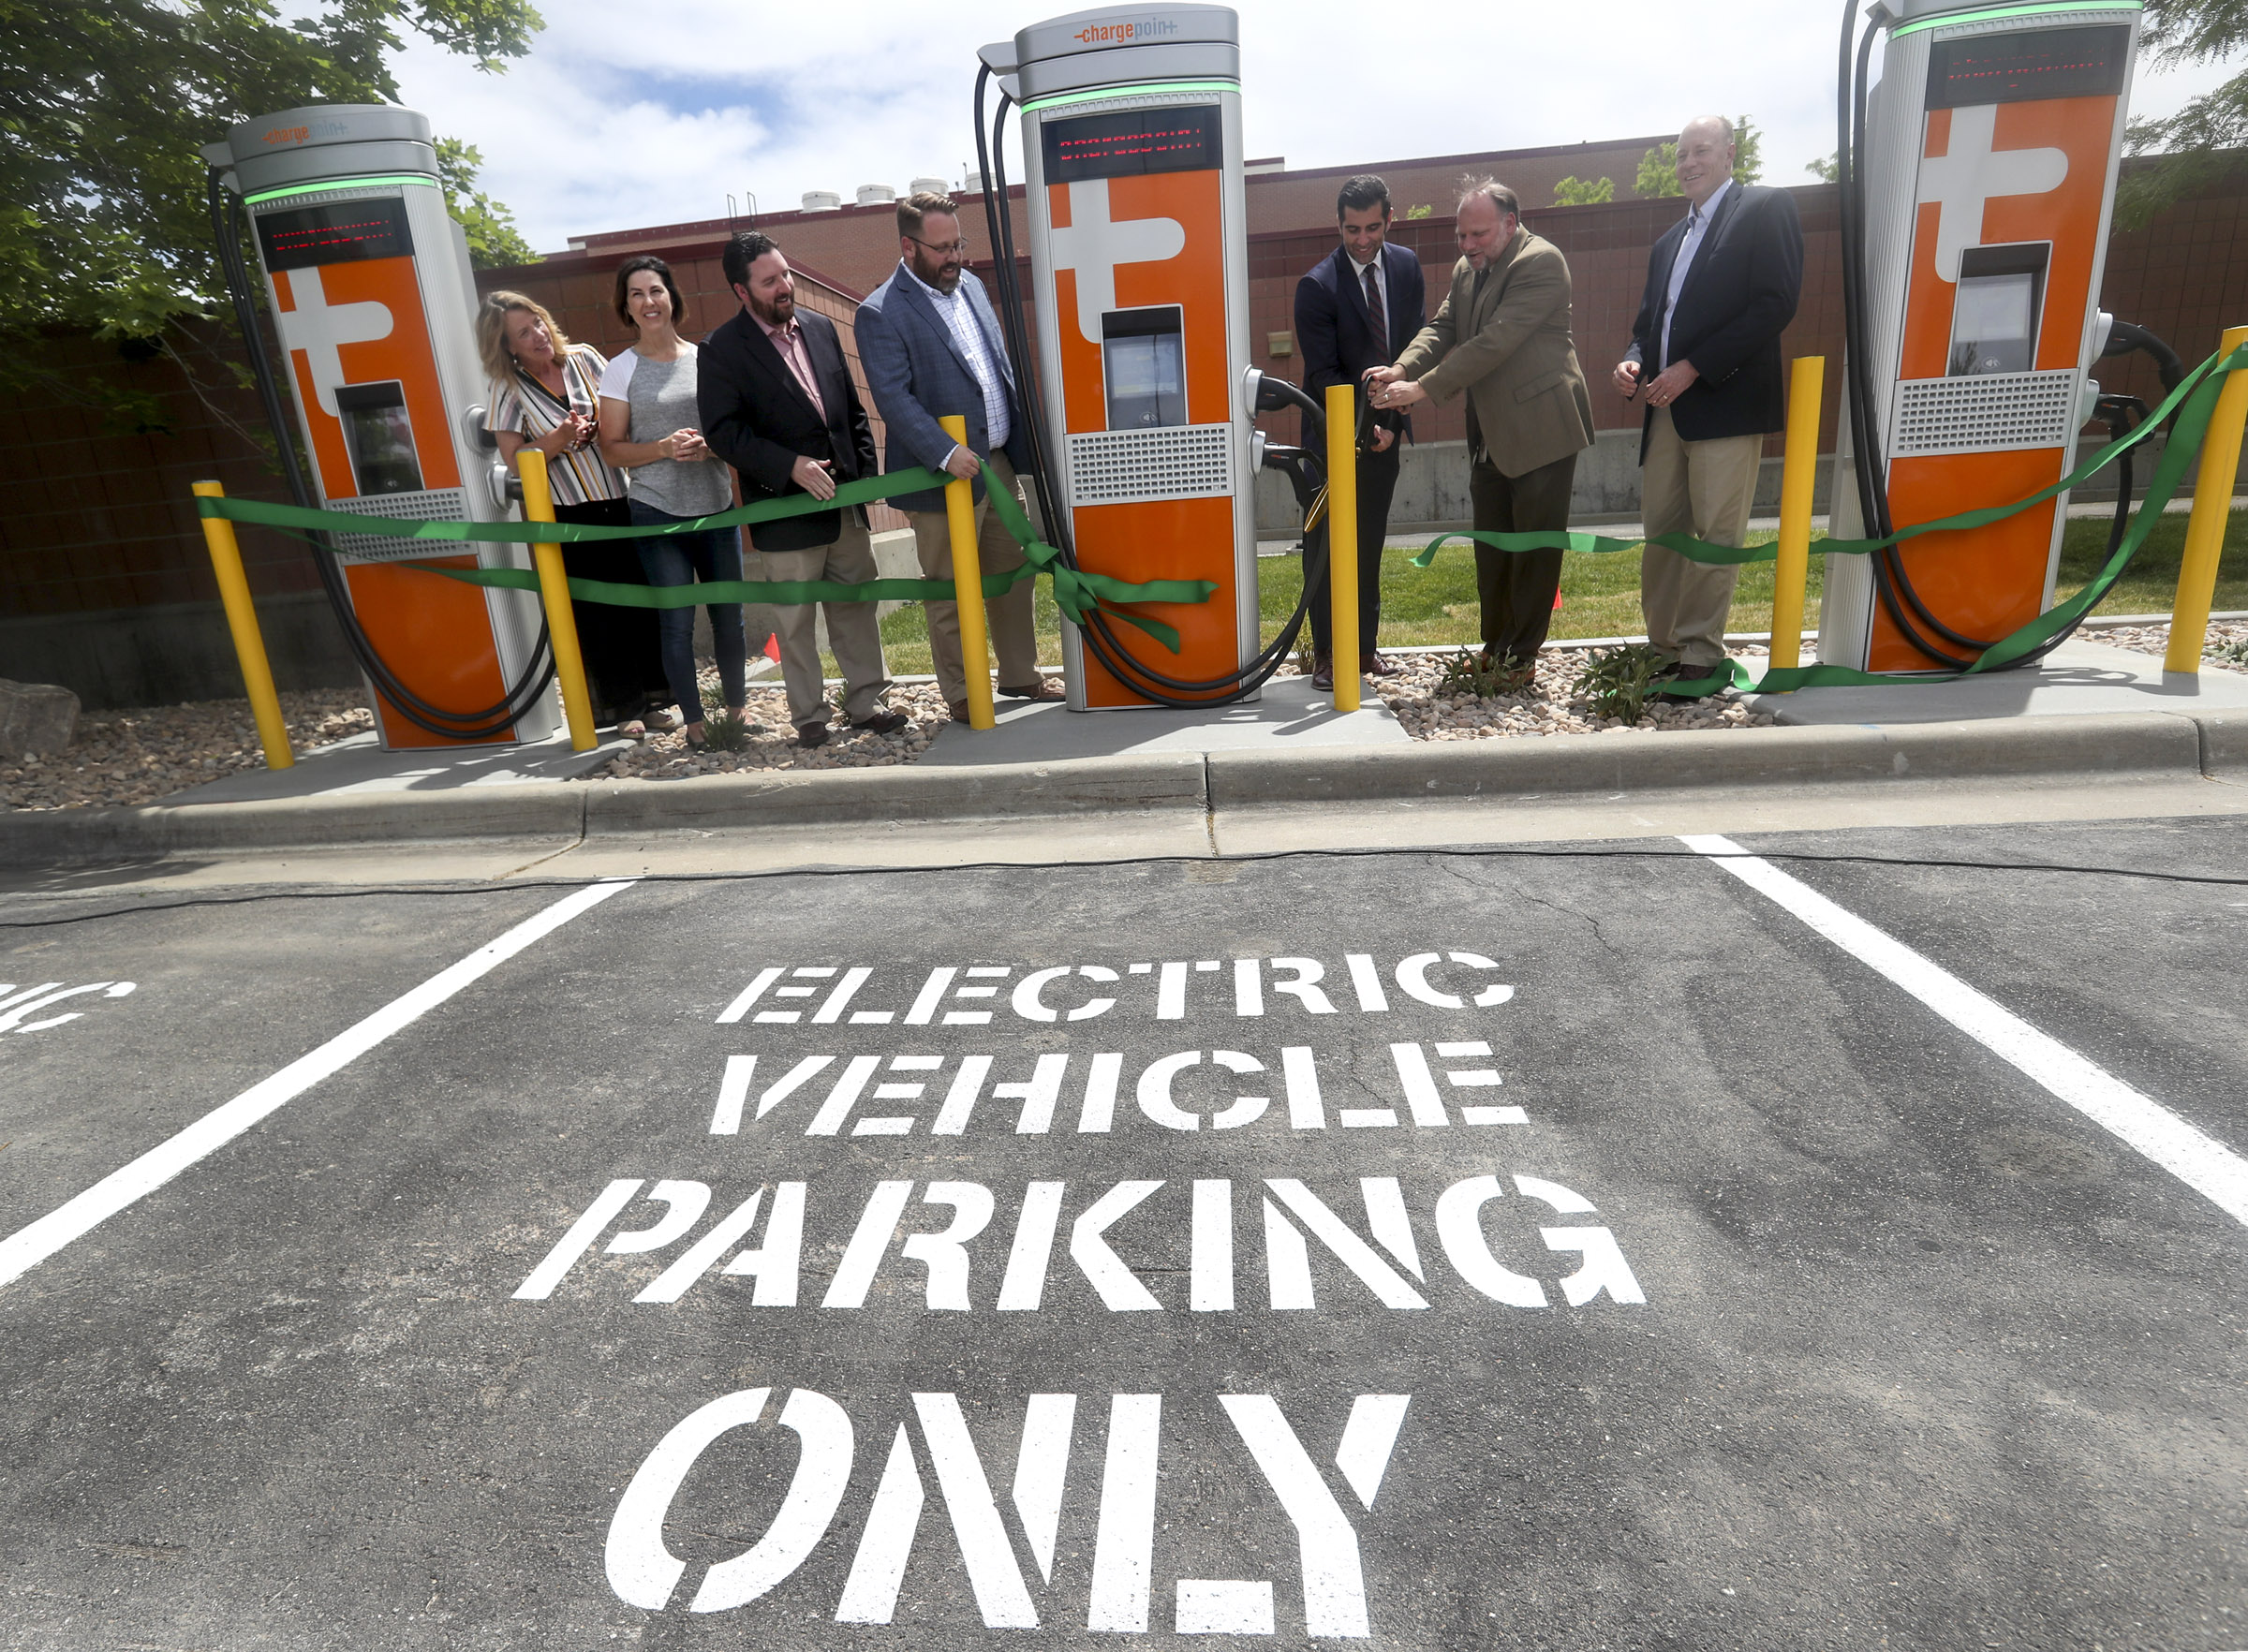 Sandy Major Kurt Bradburn is joined by Rocky Mountain Power's James Campbell and other dignitaries during a ribbon-cutting ceremony at Sandy City Hall on Wednesday, June 12, 2019. During the ceremony, officials announced the availability of 45 electric charging vehicle stations at city facilities.